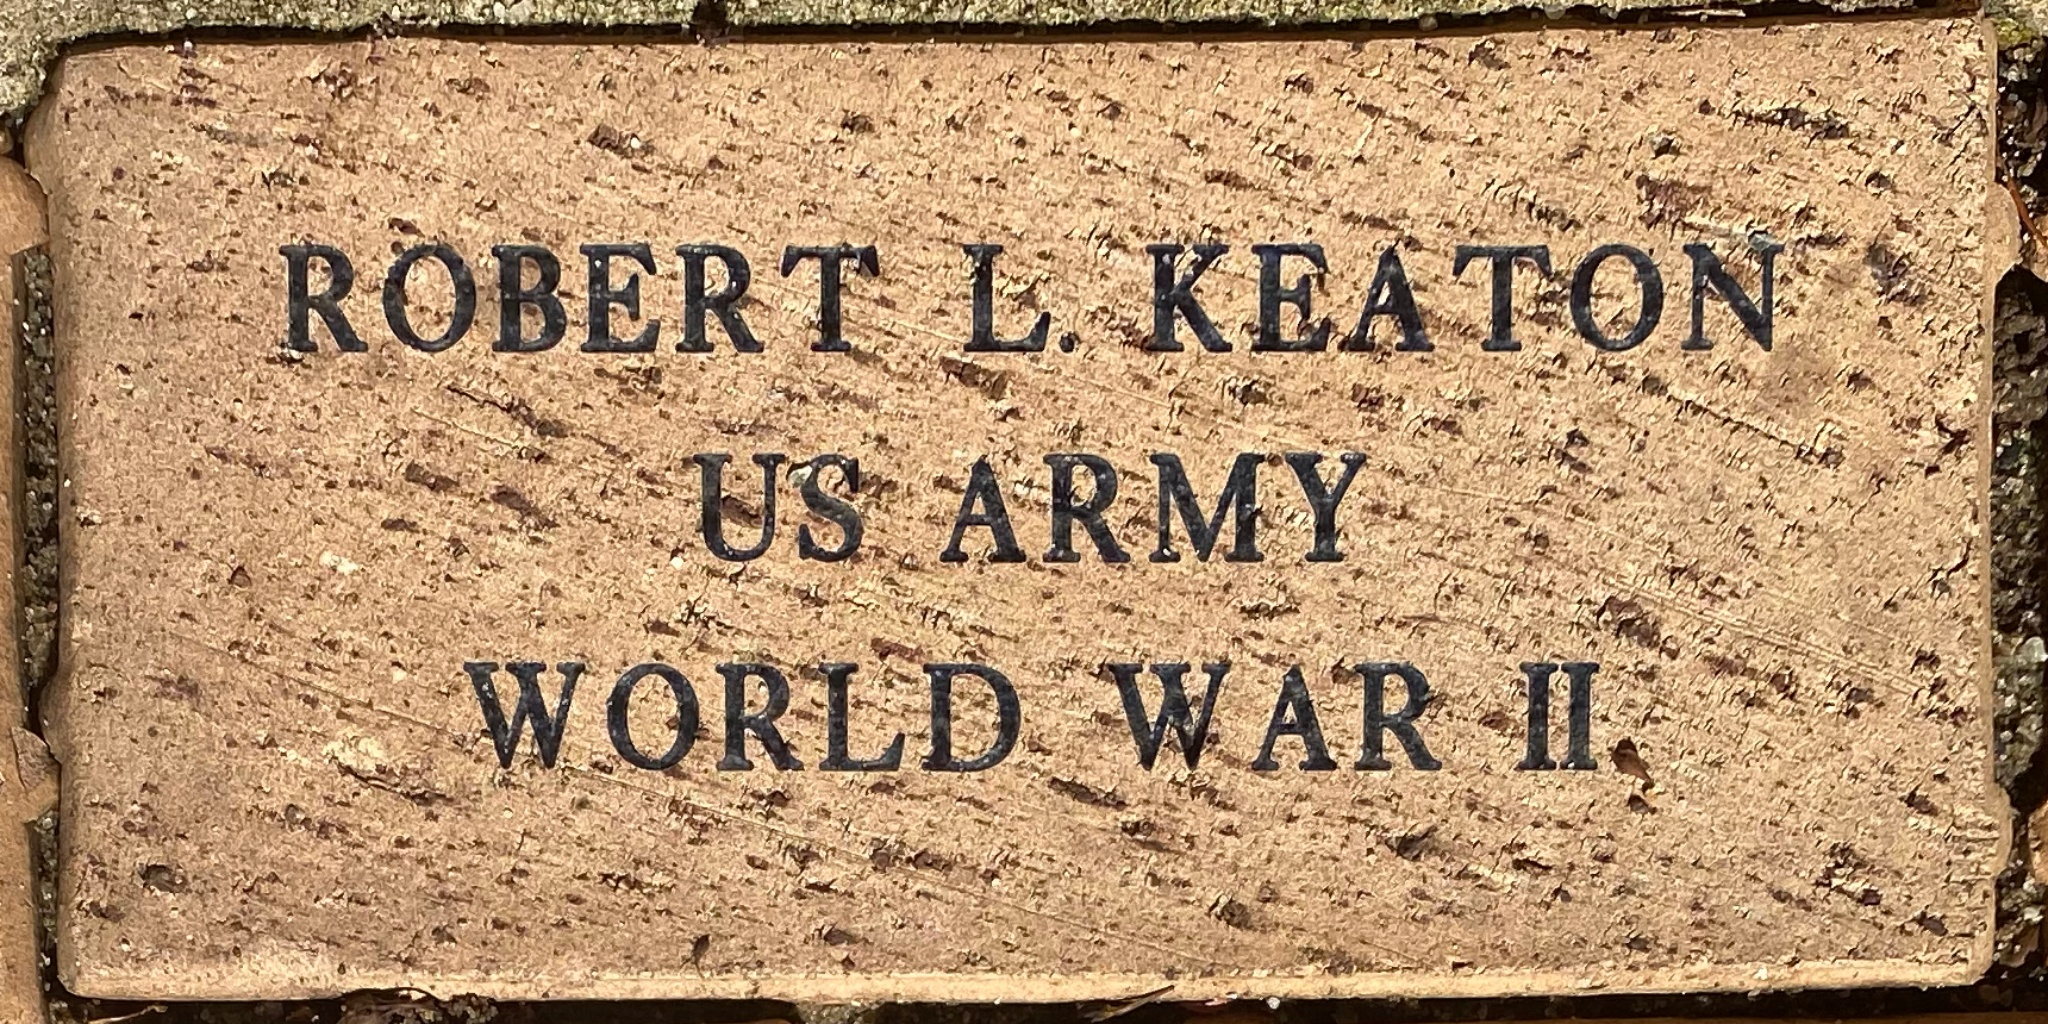 ROBERT L. KEATON U S ARMY WORLD WAR II